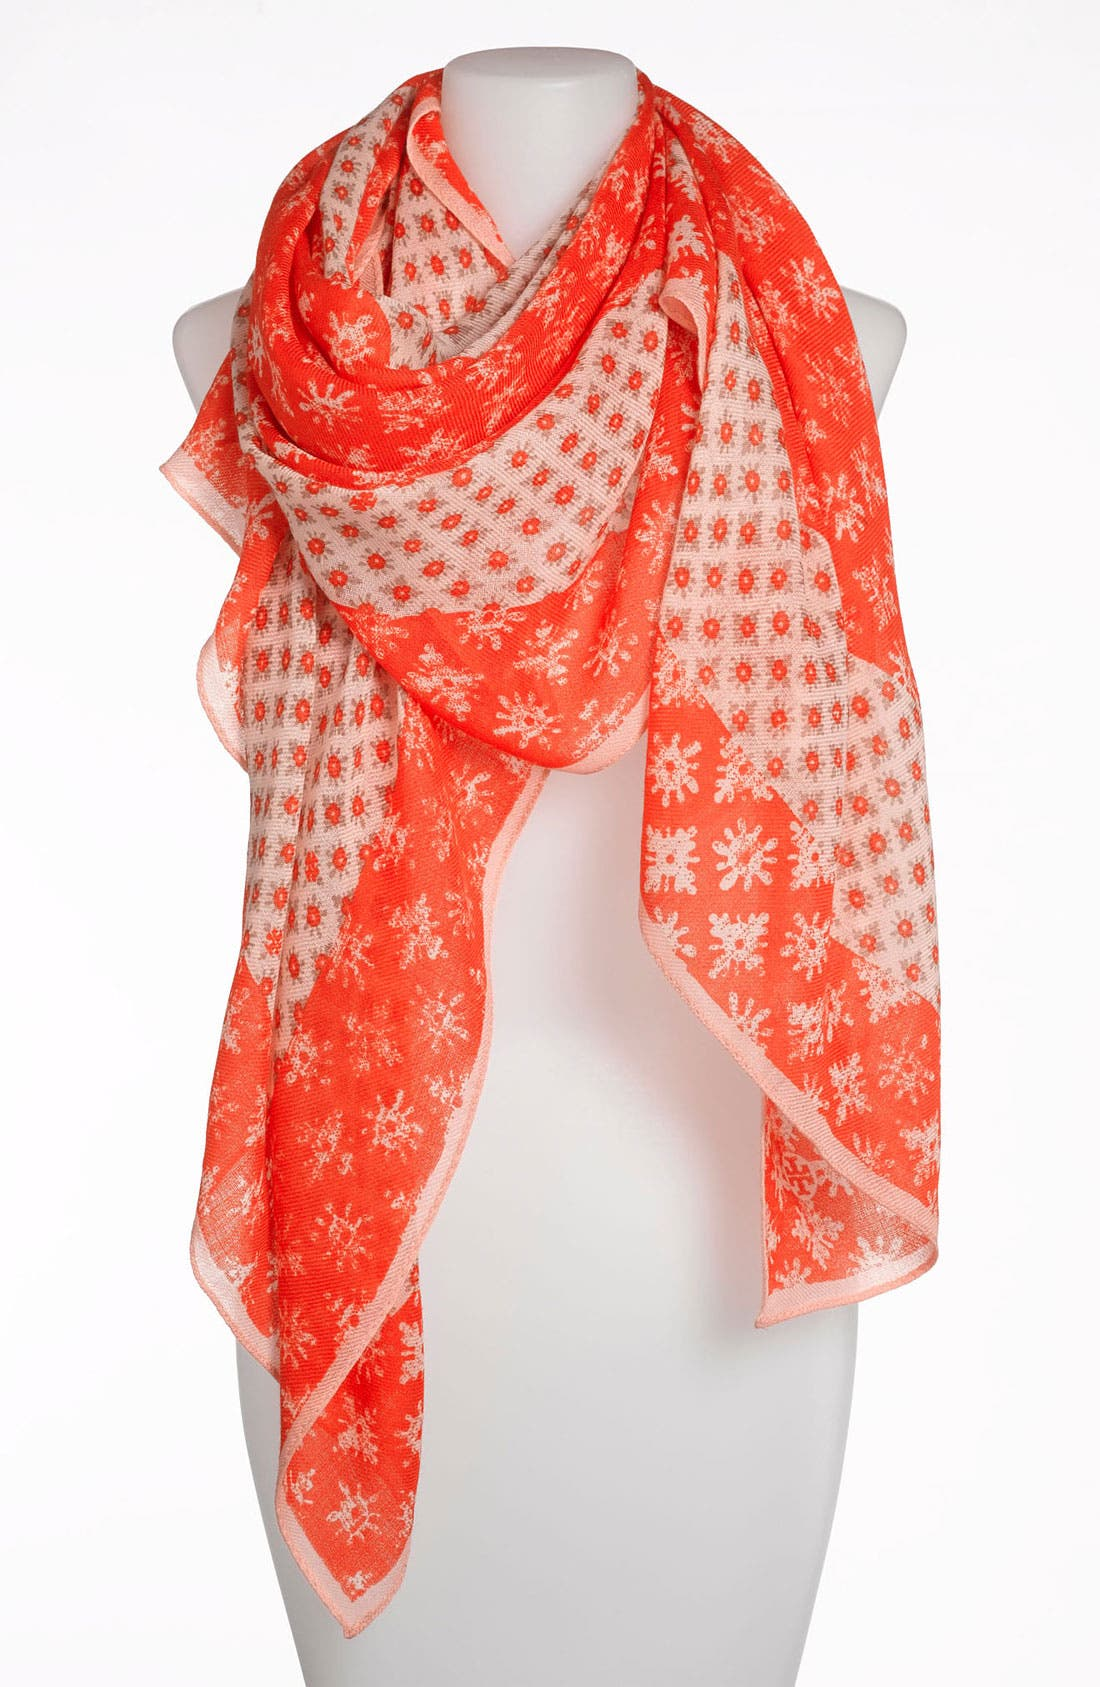 Alternate Image 1 Selected - Tory Burch 'Layton' Mix Print Scarf